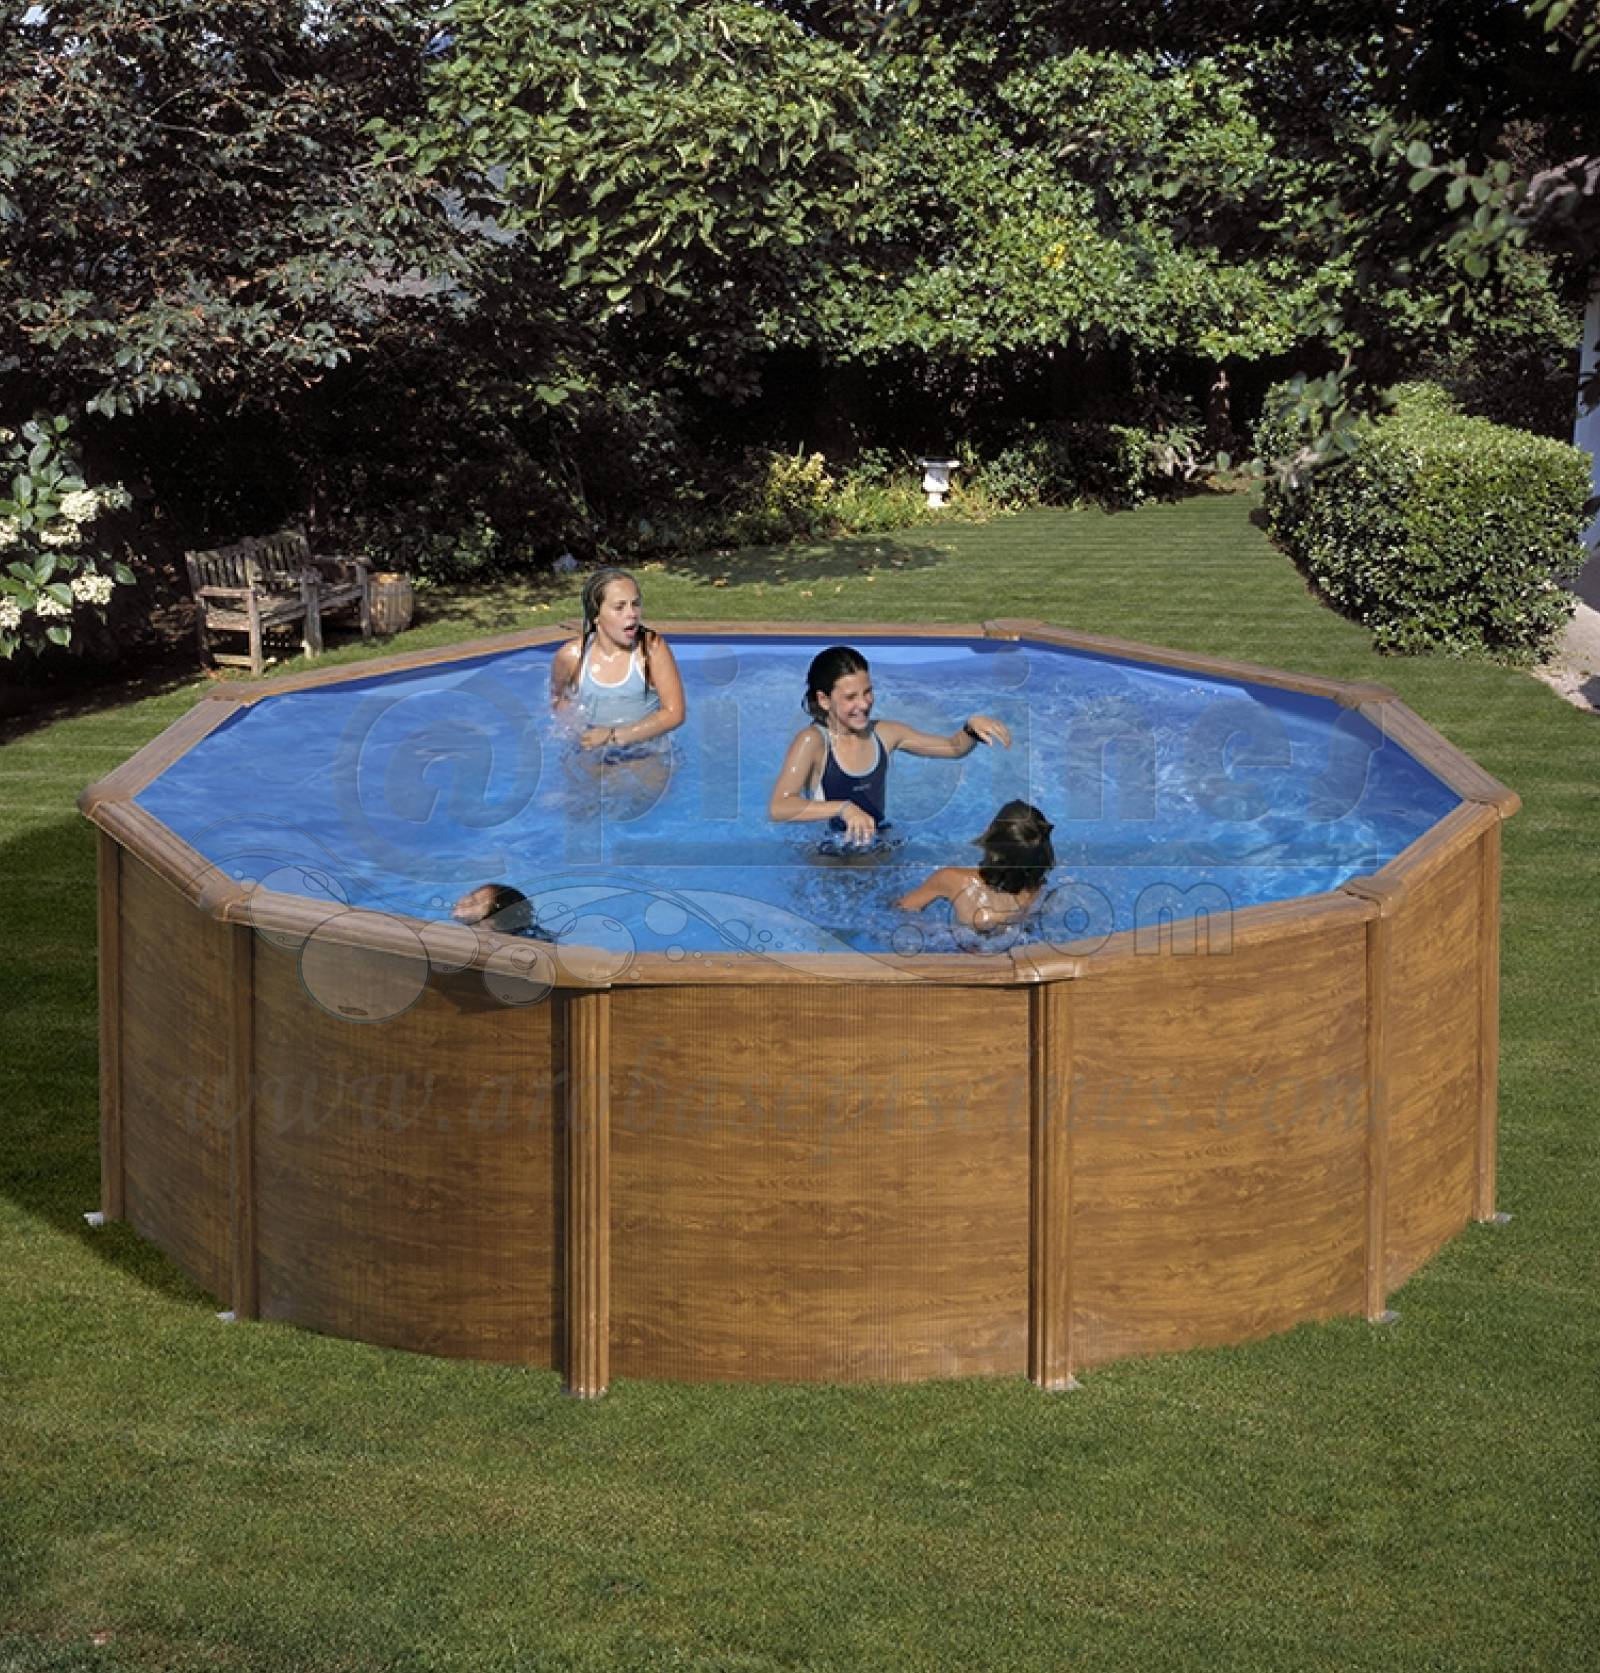 Piscine en kit hors sol acier immitation bois 3 50m de for Piscine 3m de diametre